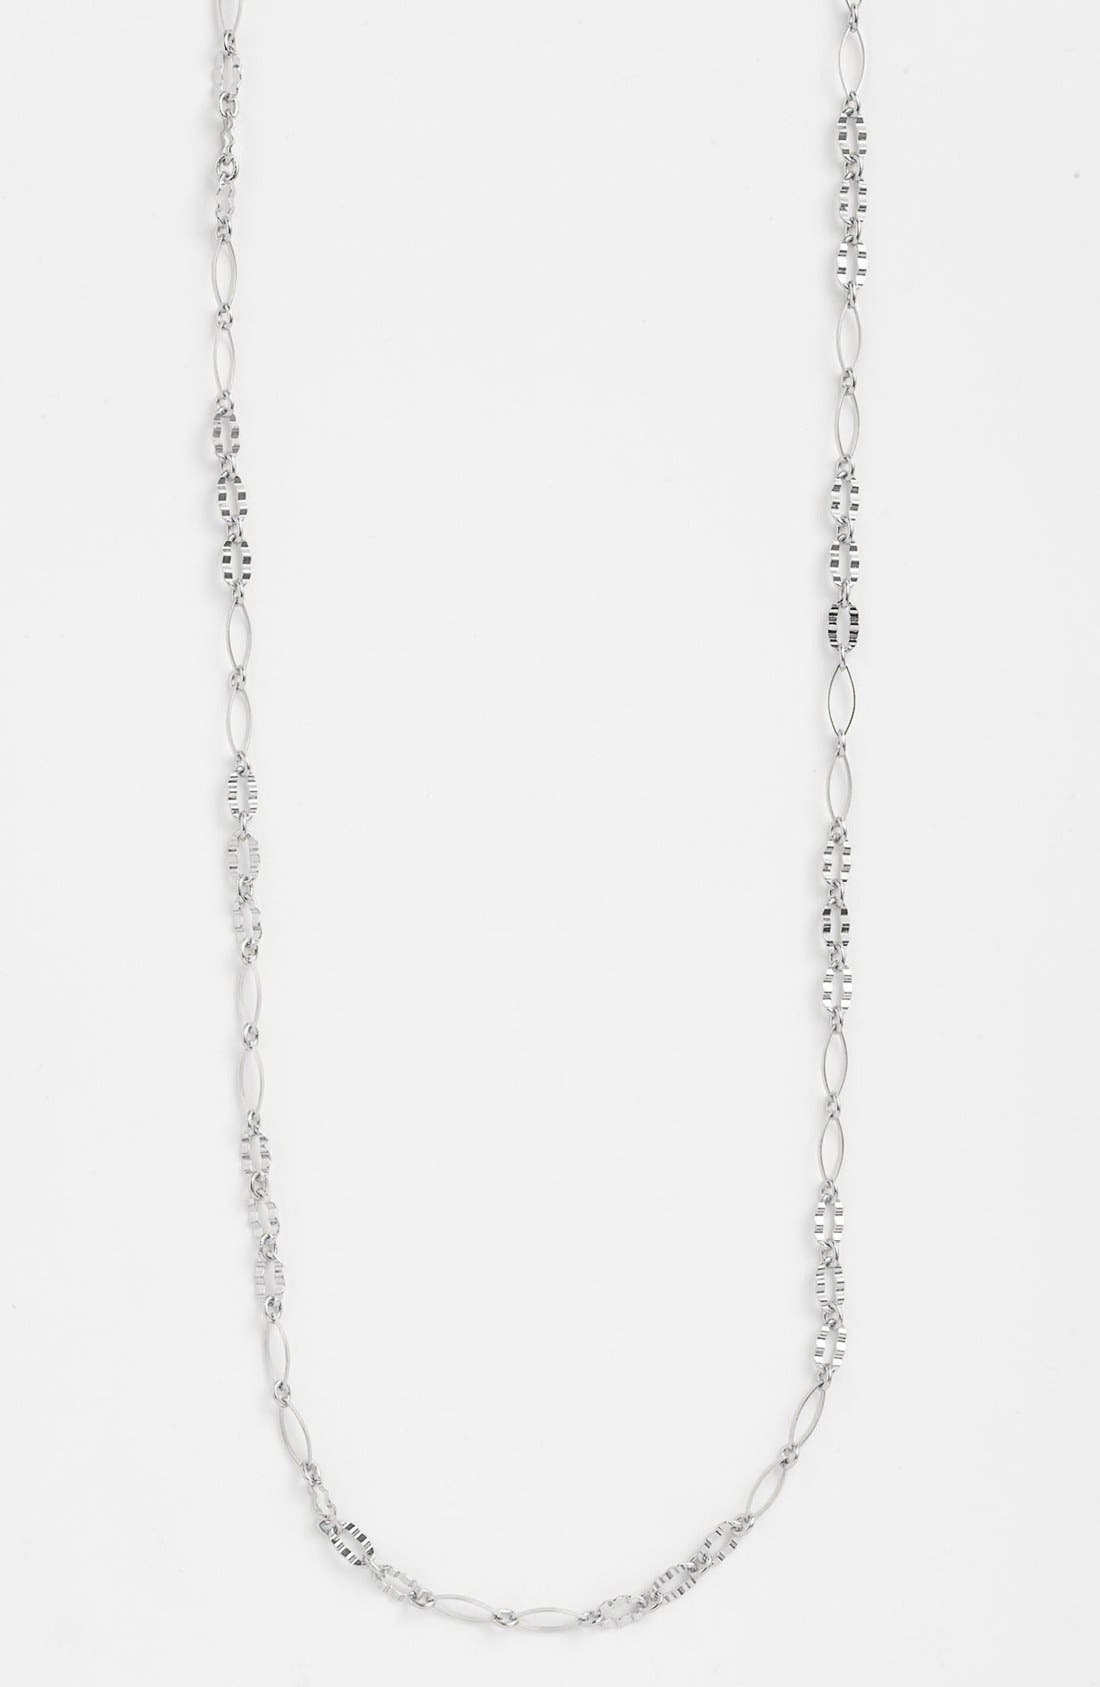 Main Image - Nordstrom 'Tribe' Extra Long Link Necklace